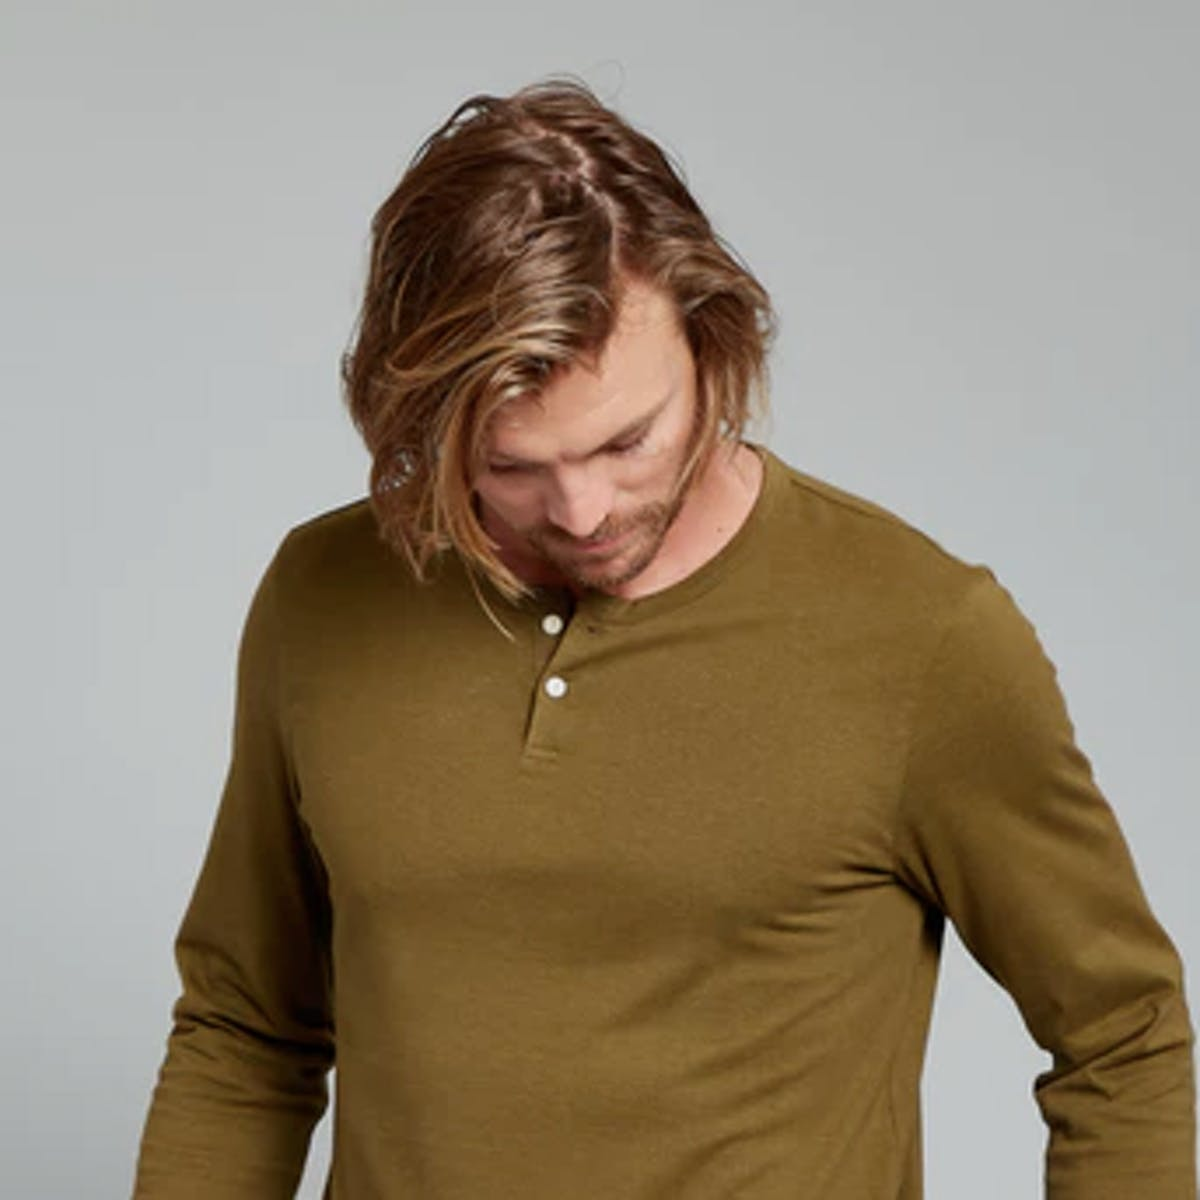 Shirts to Impress a First Date